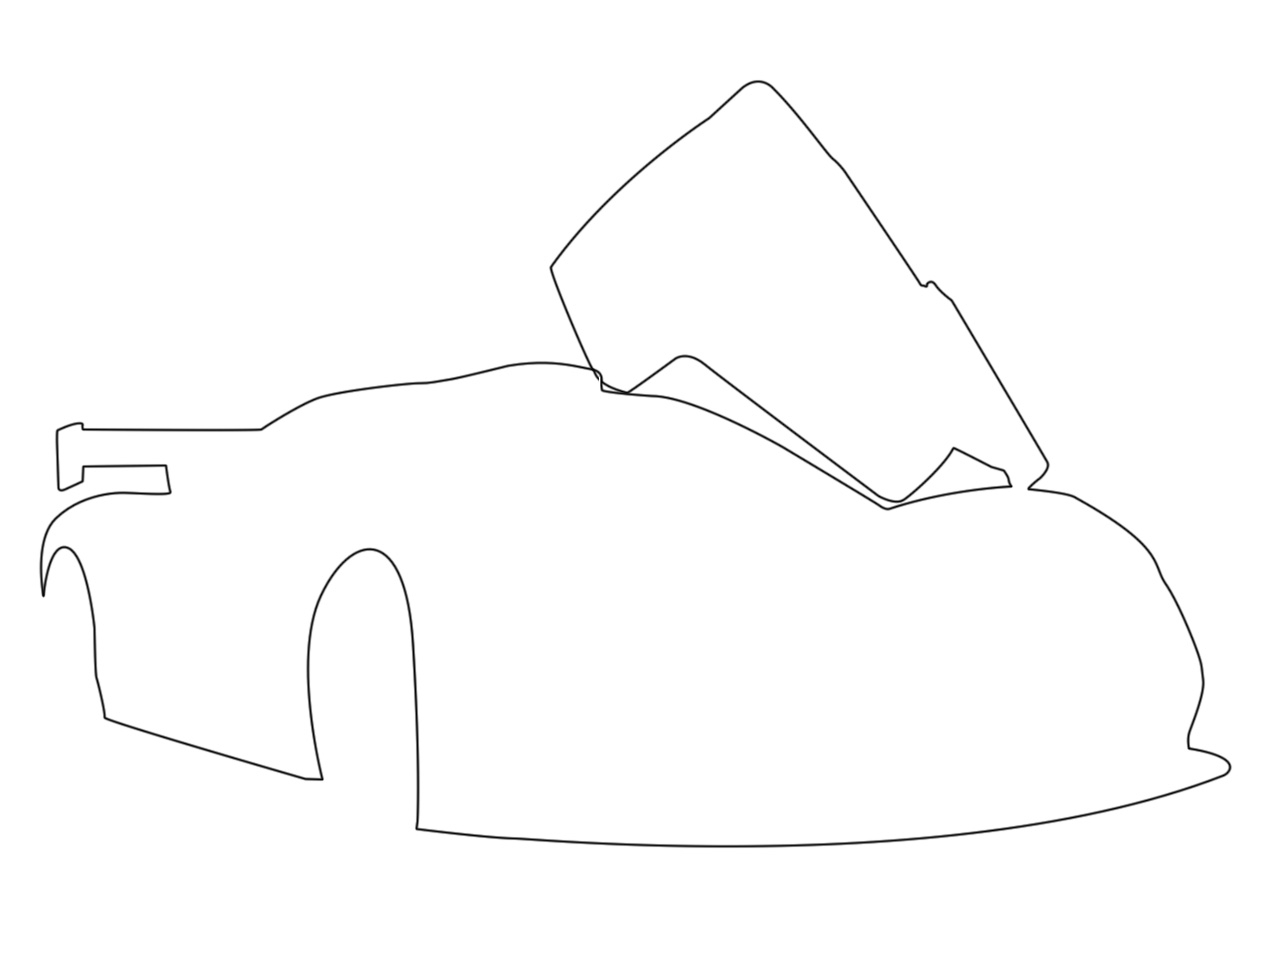 1280x960 Drawing A Car Lineart In Photoshop